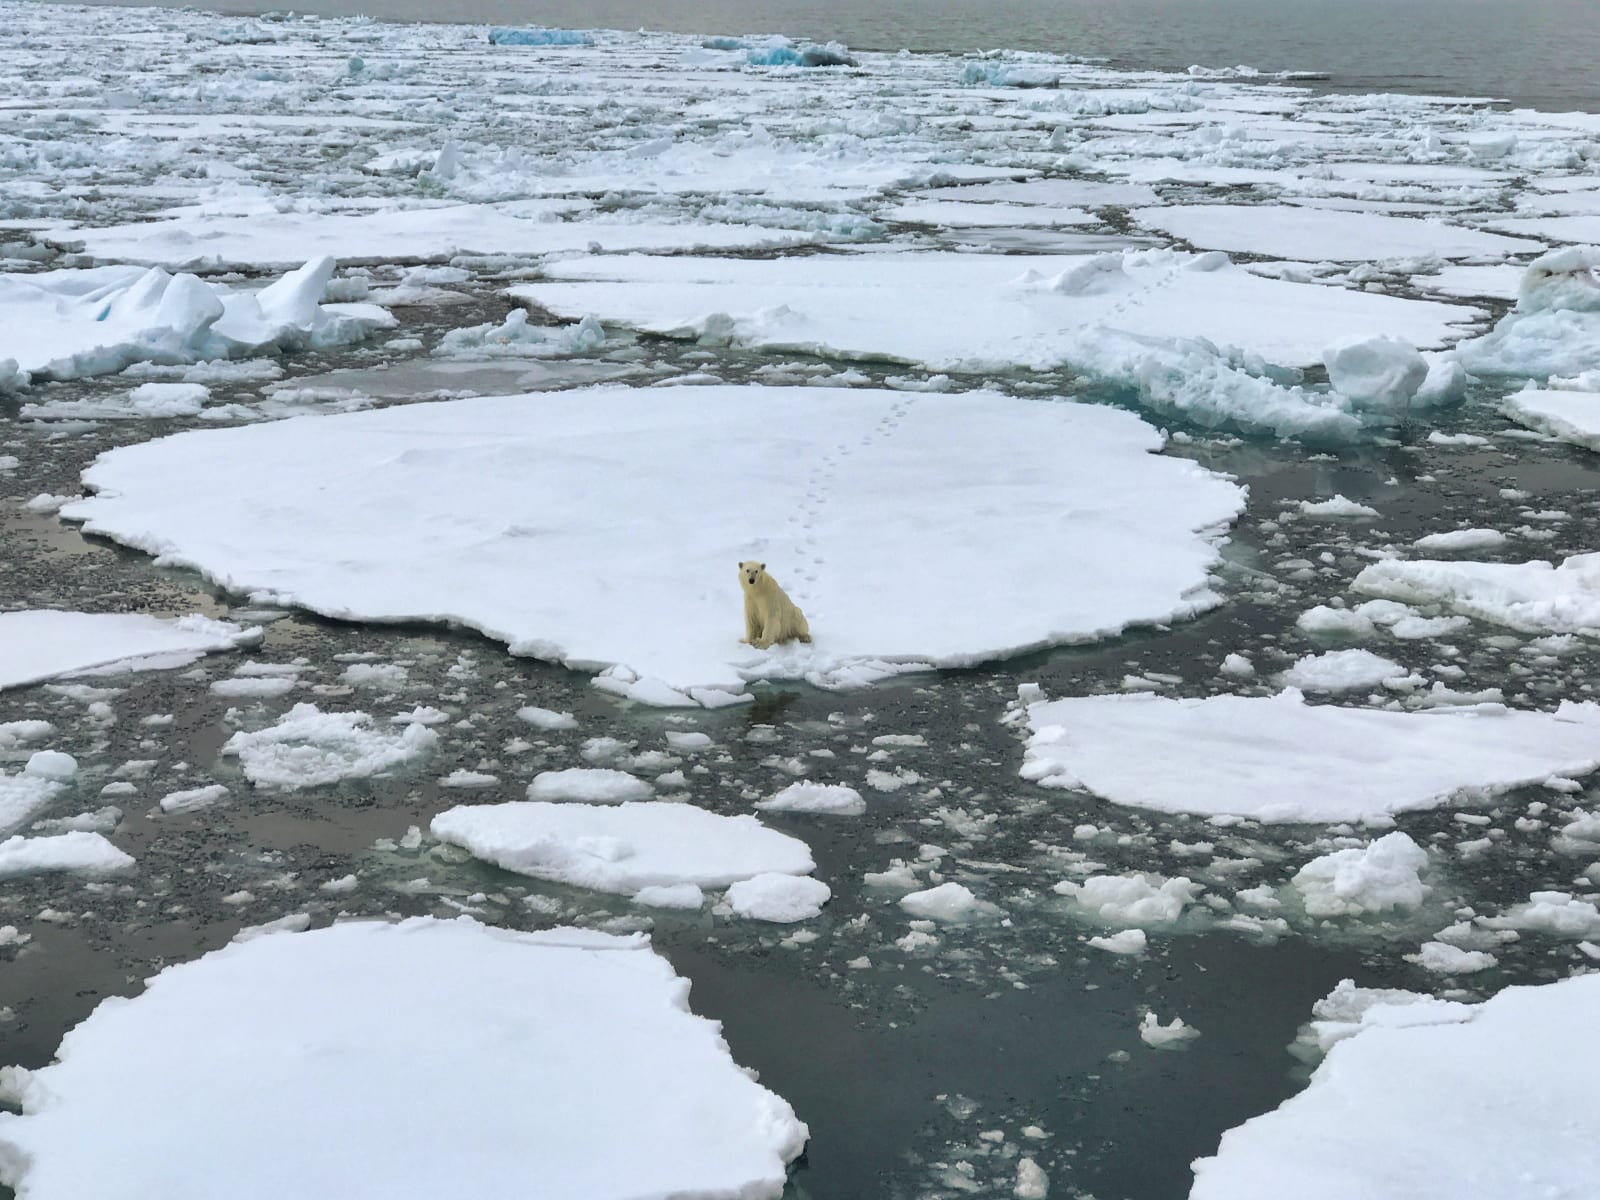 Polar bear sitting on sea ice